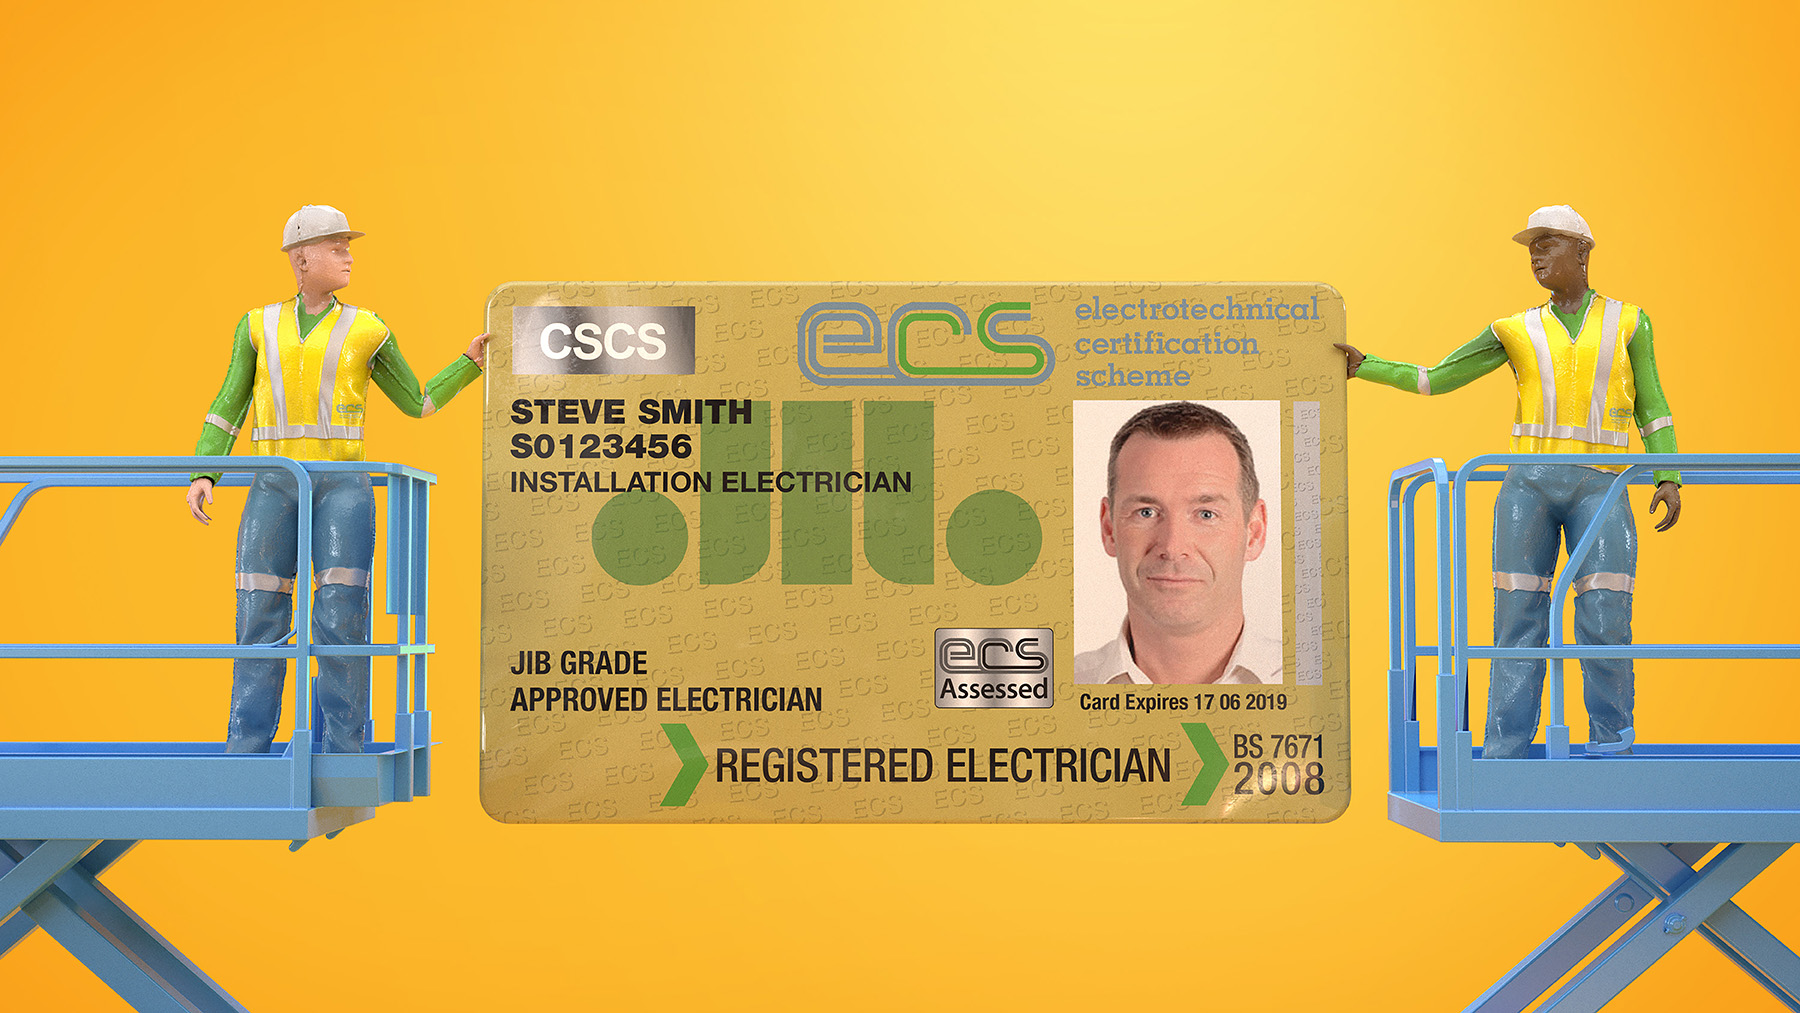 Ecs News Auto Electrical Wiring Diagram Viair Relay 40043 4 00p Portable Compressor Registered Electricians U2013 Have You Signed Up Yet